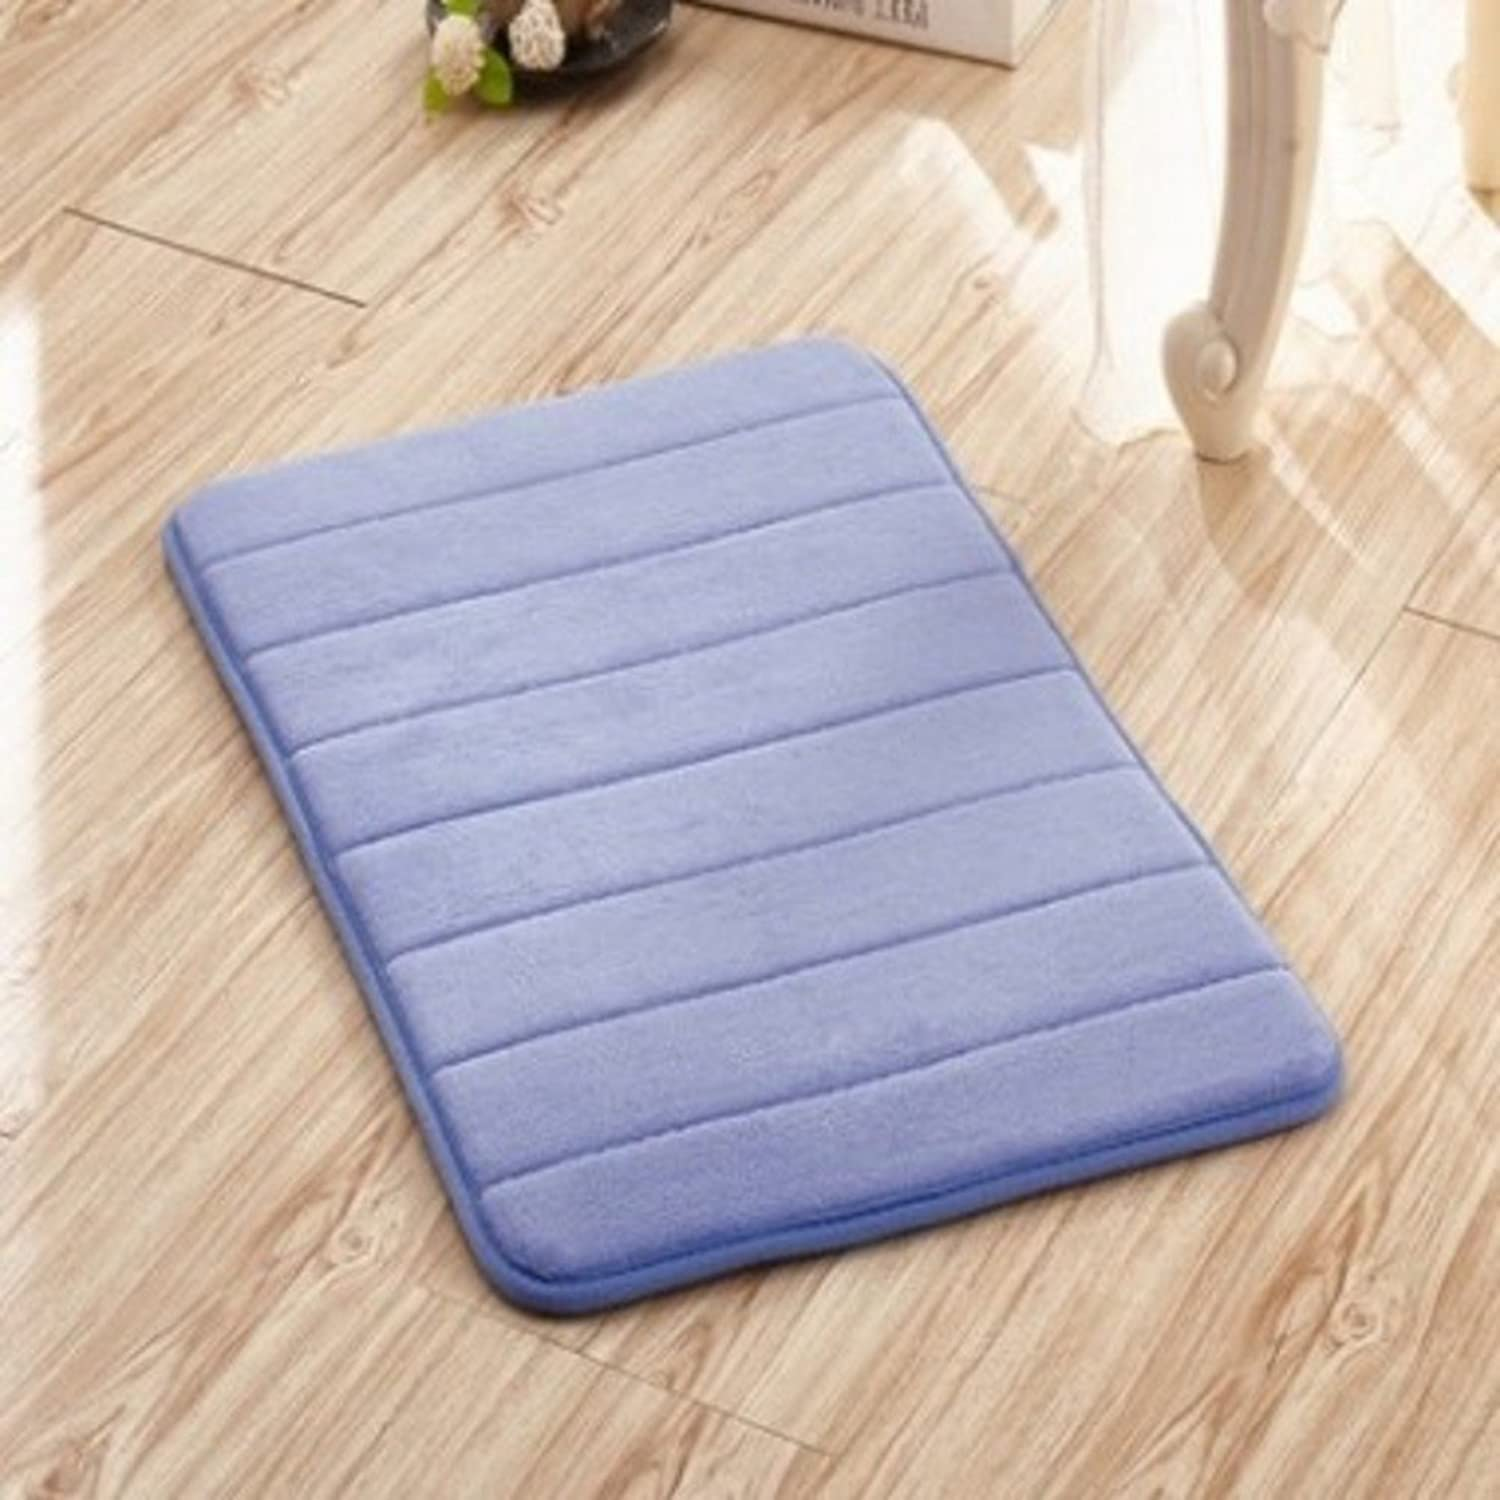 Carpet Doormat Memory Foam,Anti-skidding,Water-Absorbing Mats Slow Rebound Carpet Kitchen,Restroom,Bathroom Mat-I 80x160cm(31x63inch)